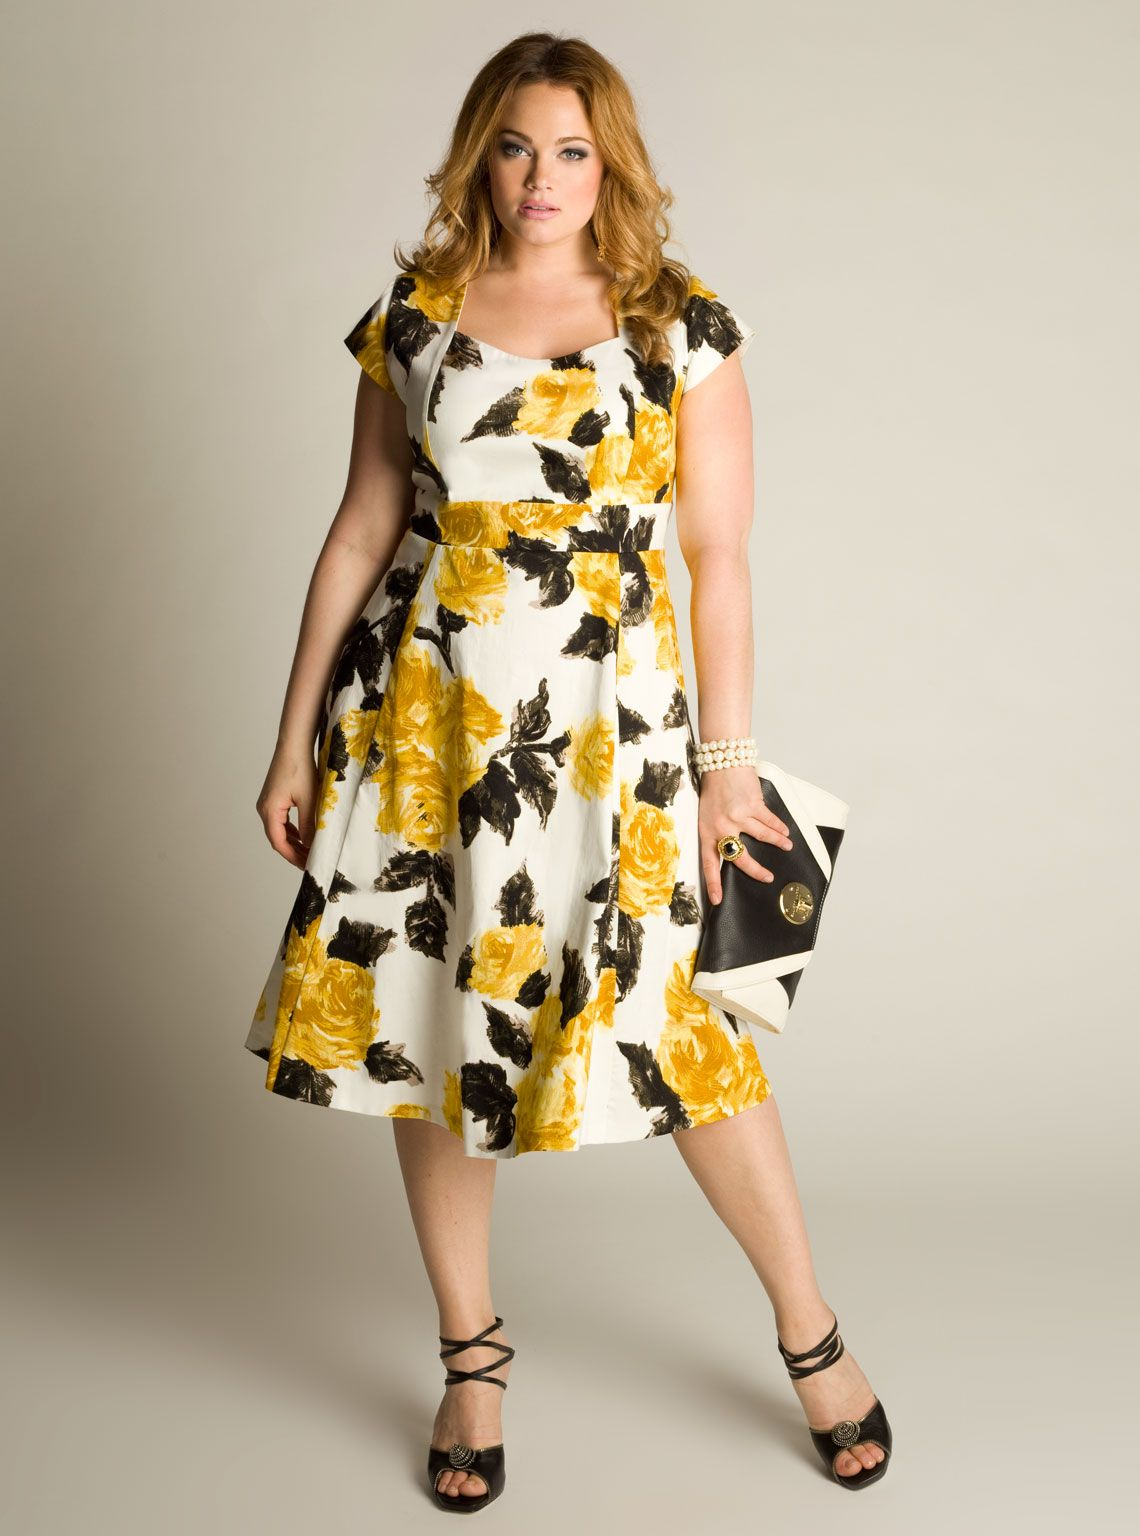 1950s Plus Size Dresses, Clothing | Plus size dresses, Summer and ...